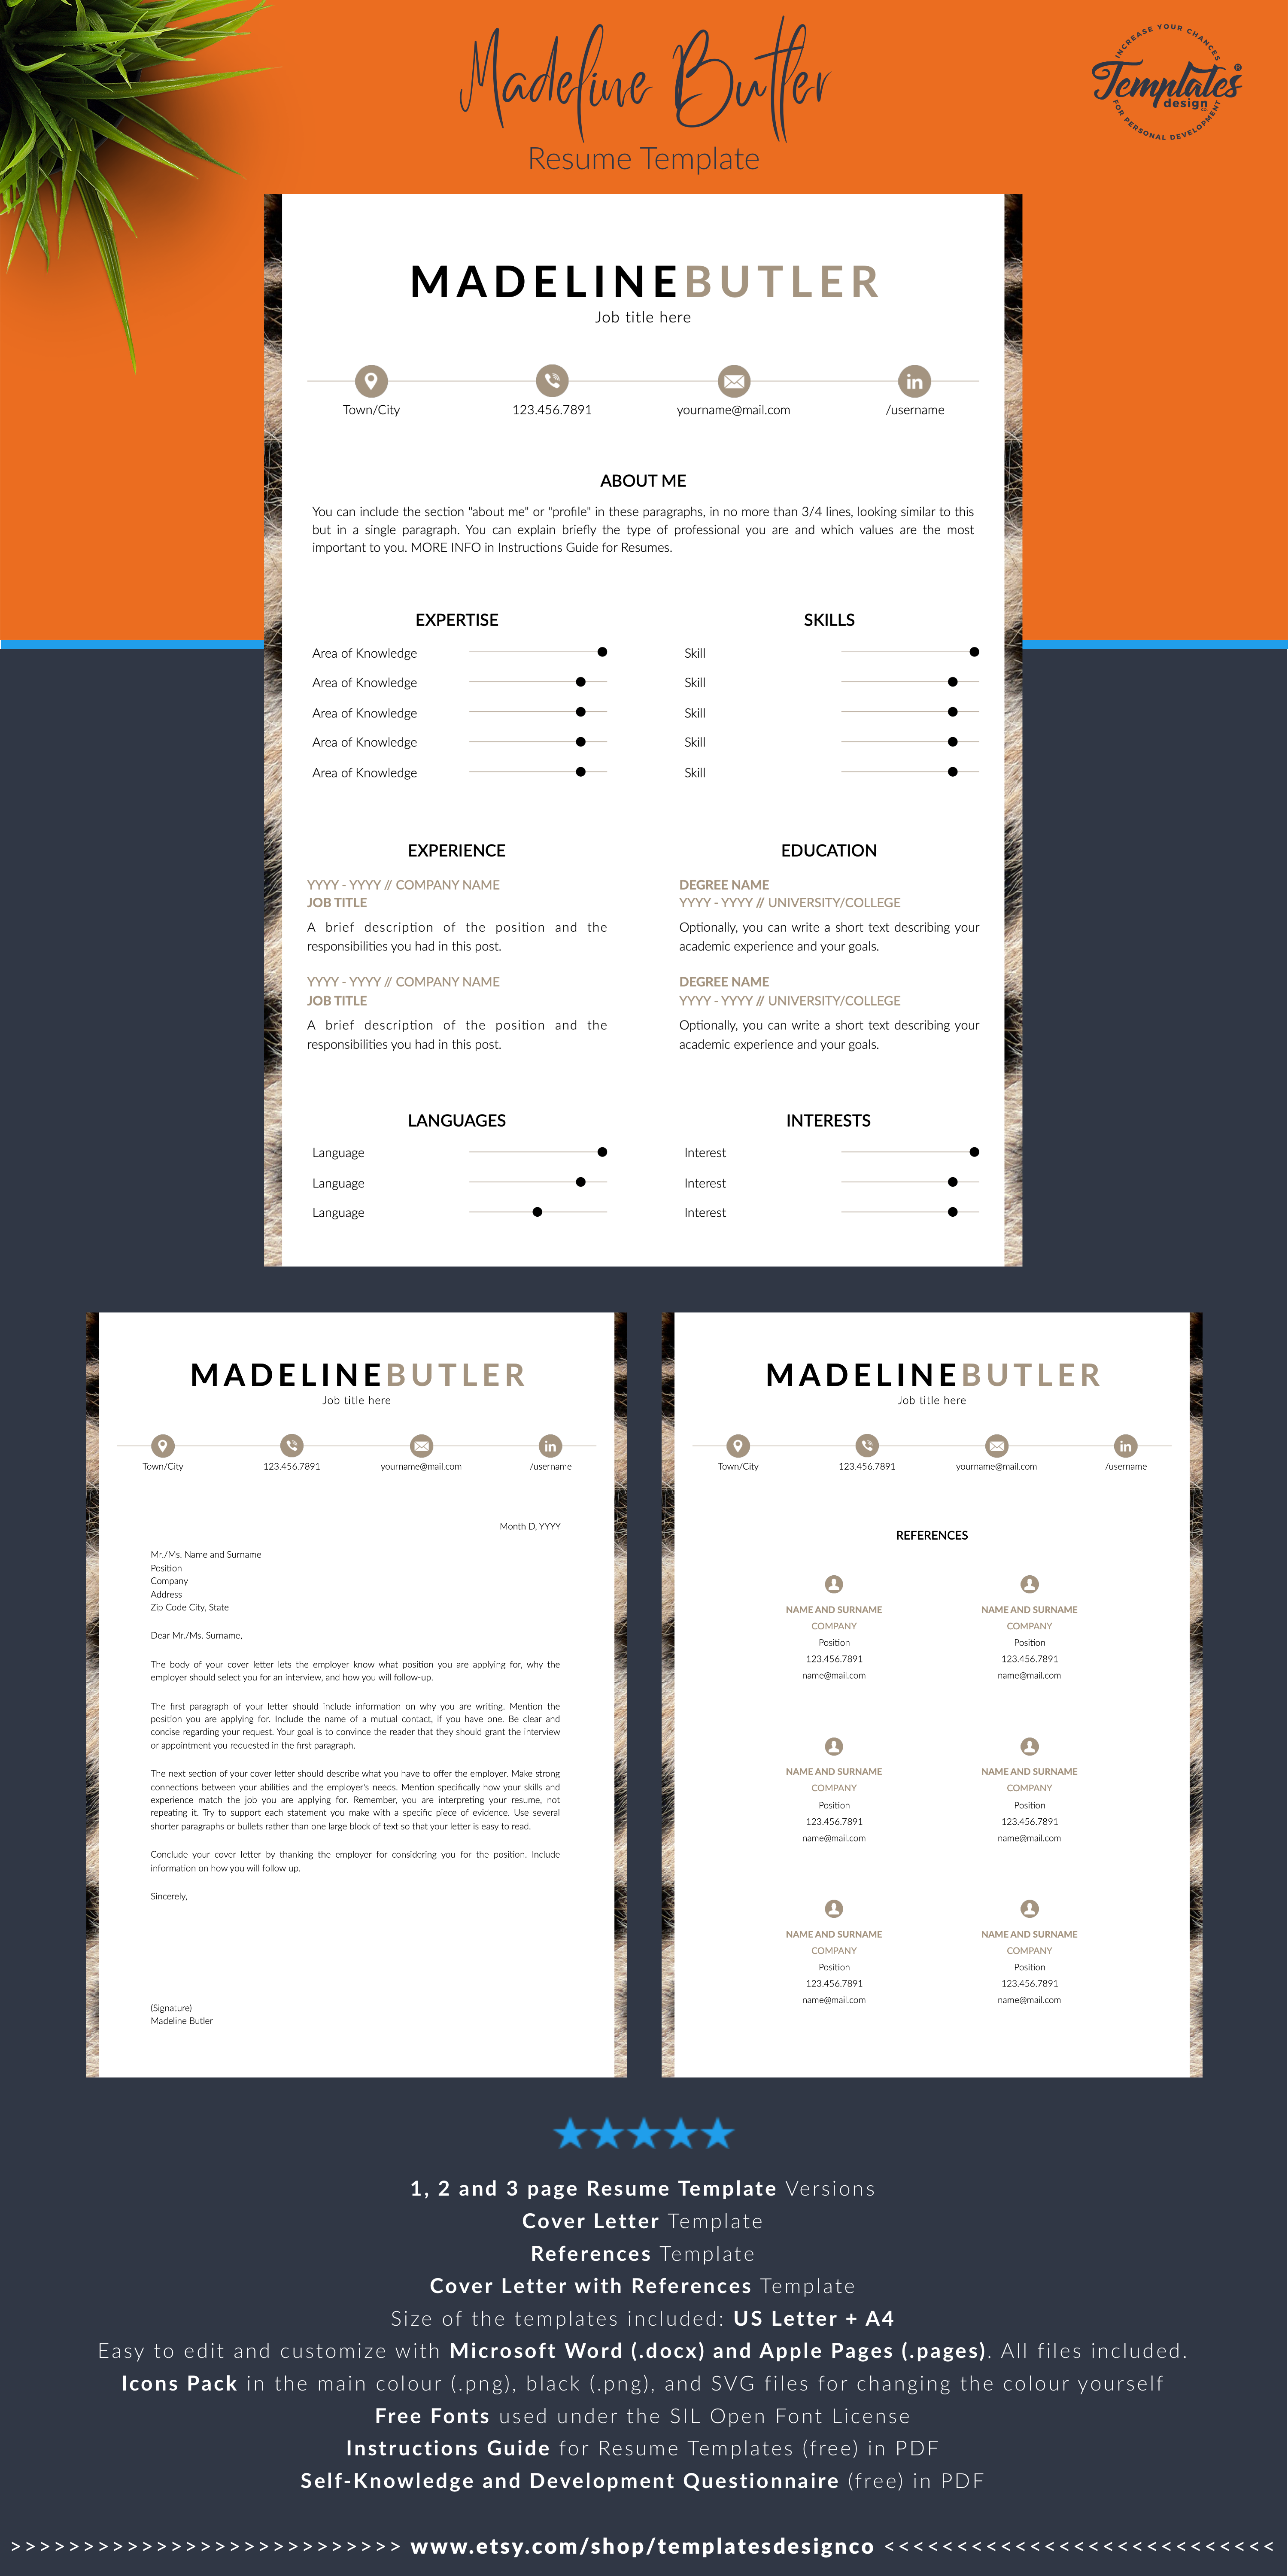 Veterinarian Resume Template For Ms Word Pages Cv For Veterinarian Veterinarian Assistant Or Associate Veterinarian Instant Download Resume Template Reference Letter Template Cover Letter Template